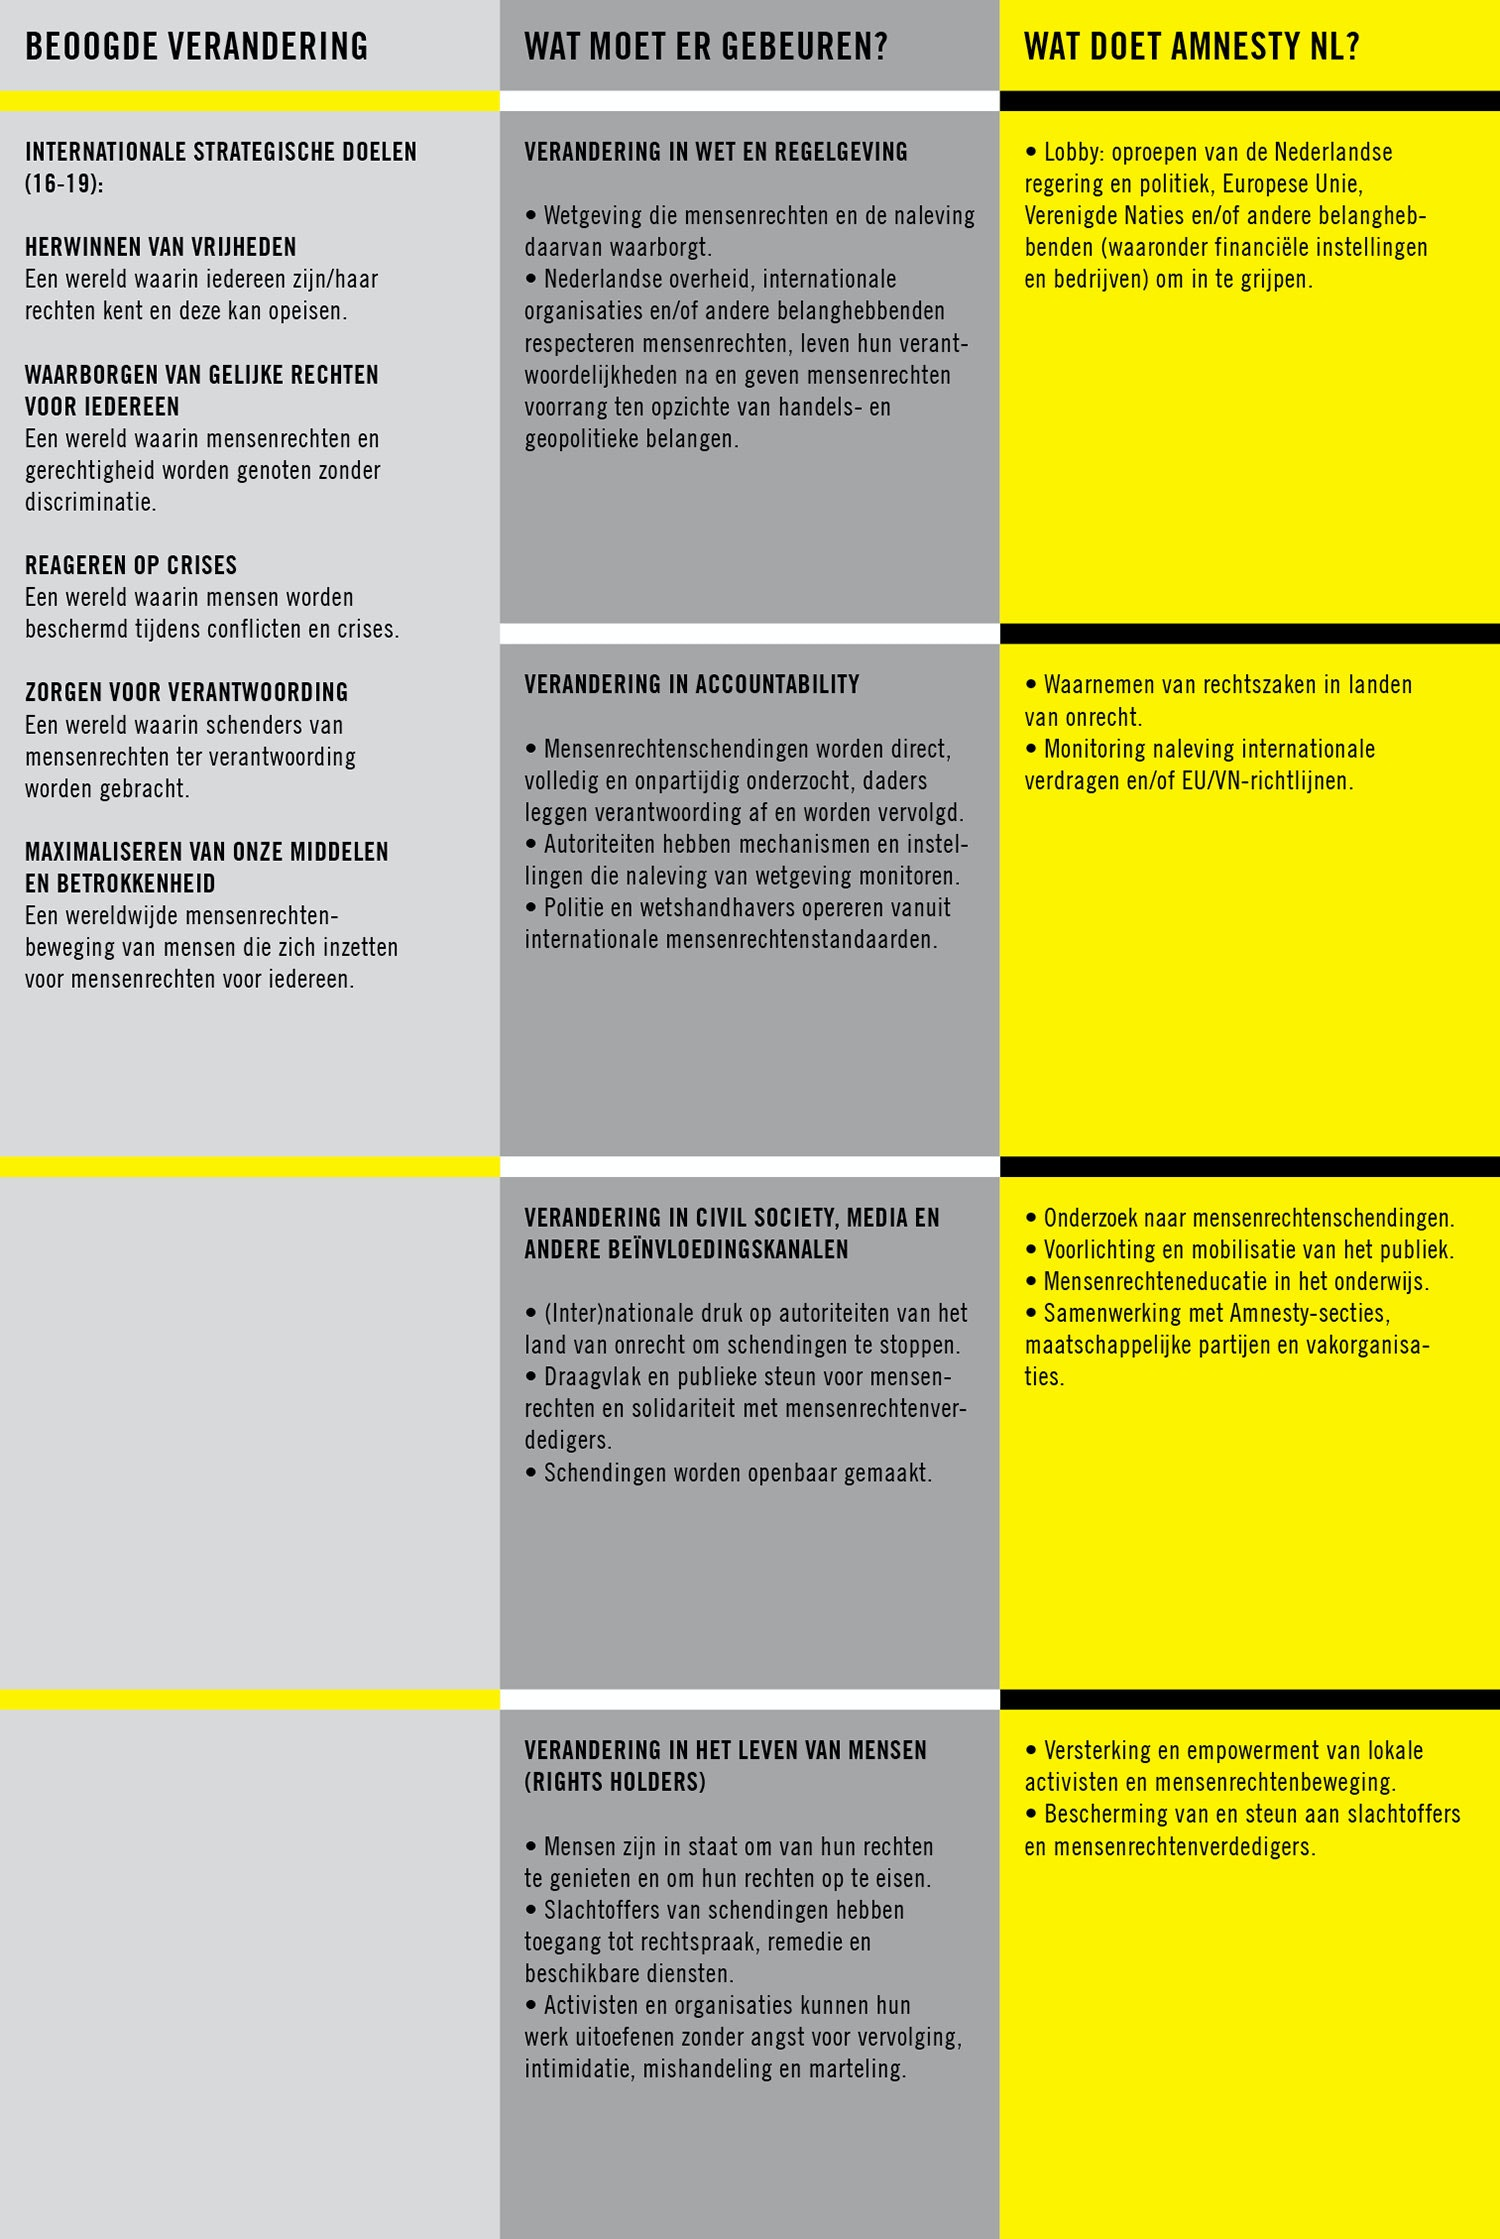 Super Strategie, beleid, visie en missie - Amnesty International &SL47